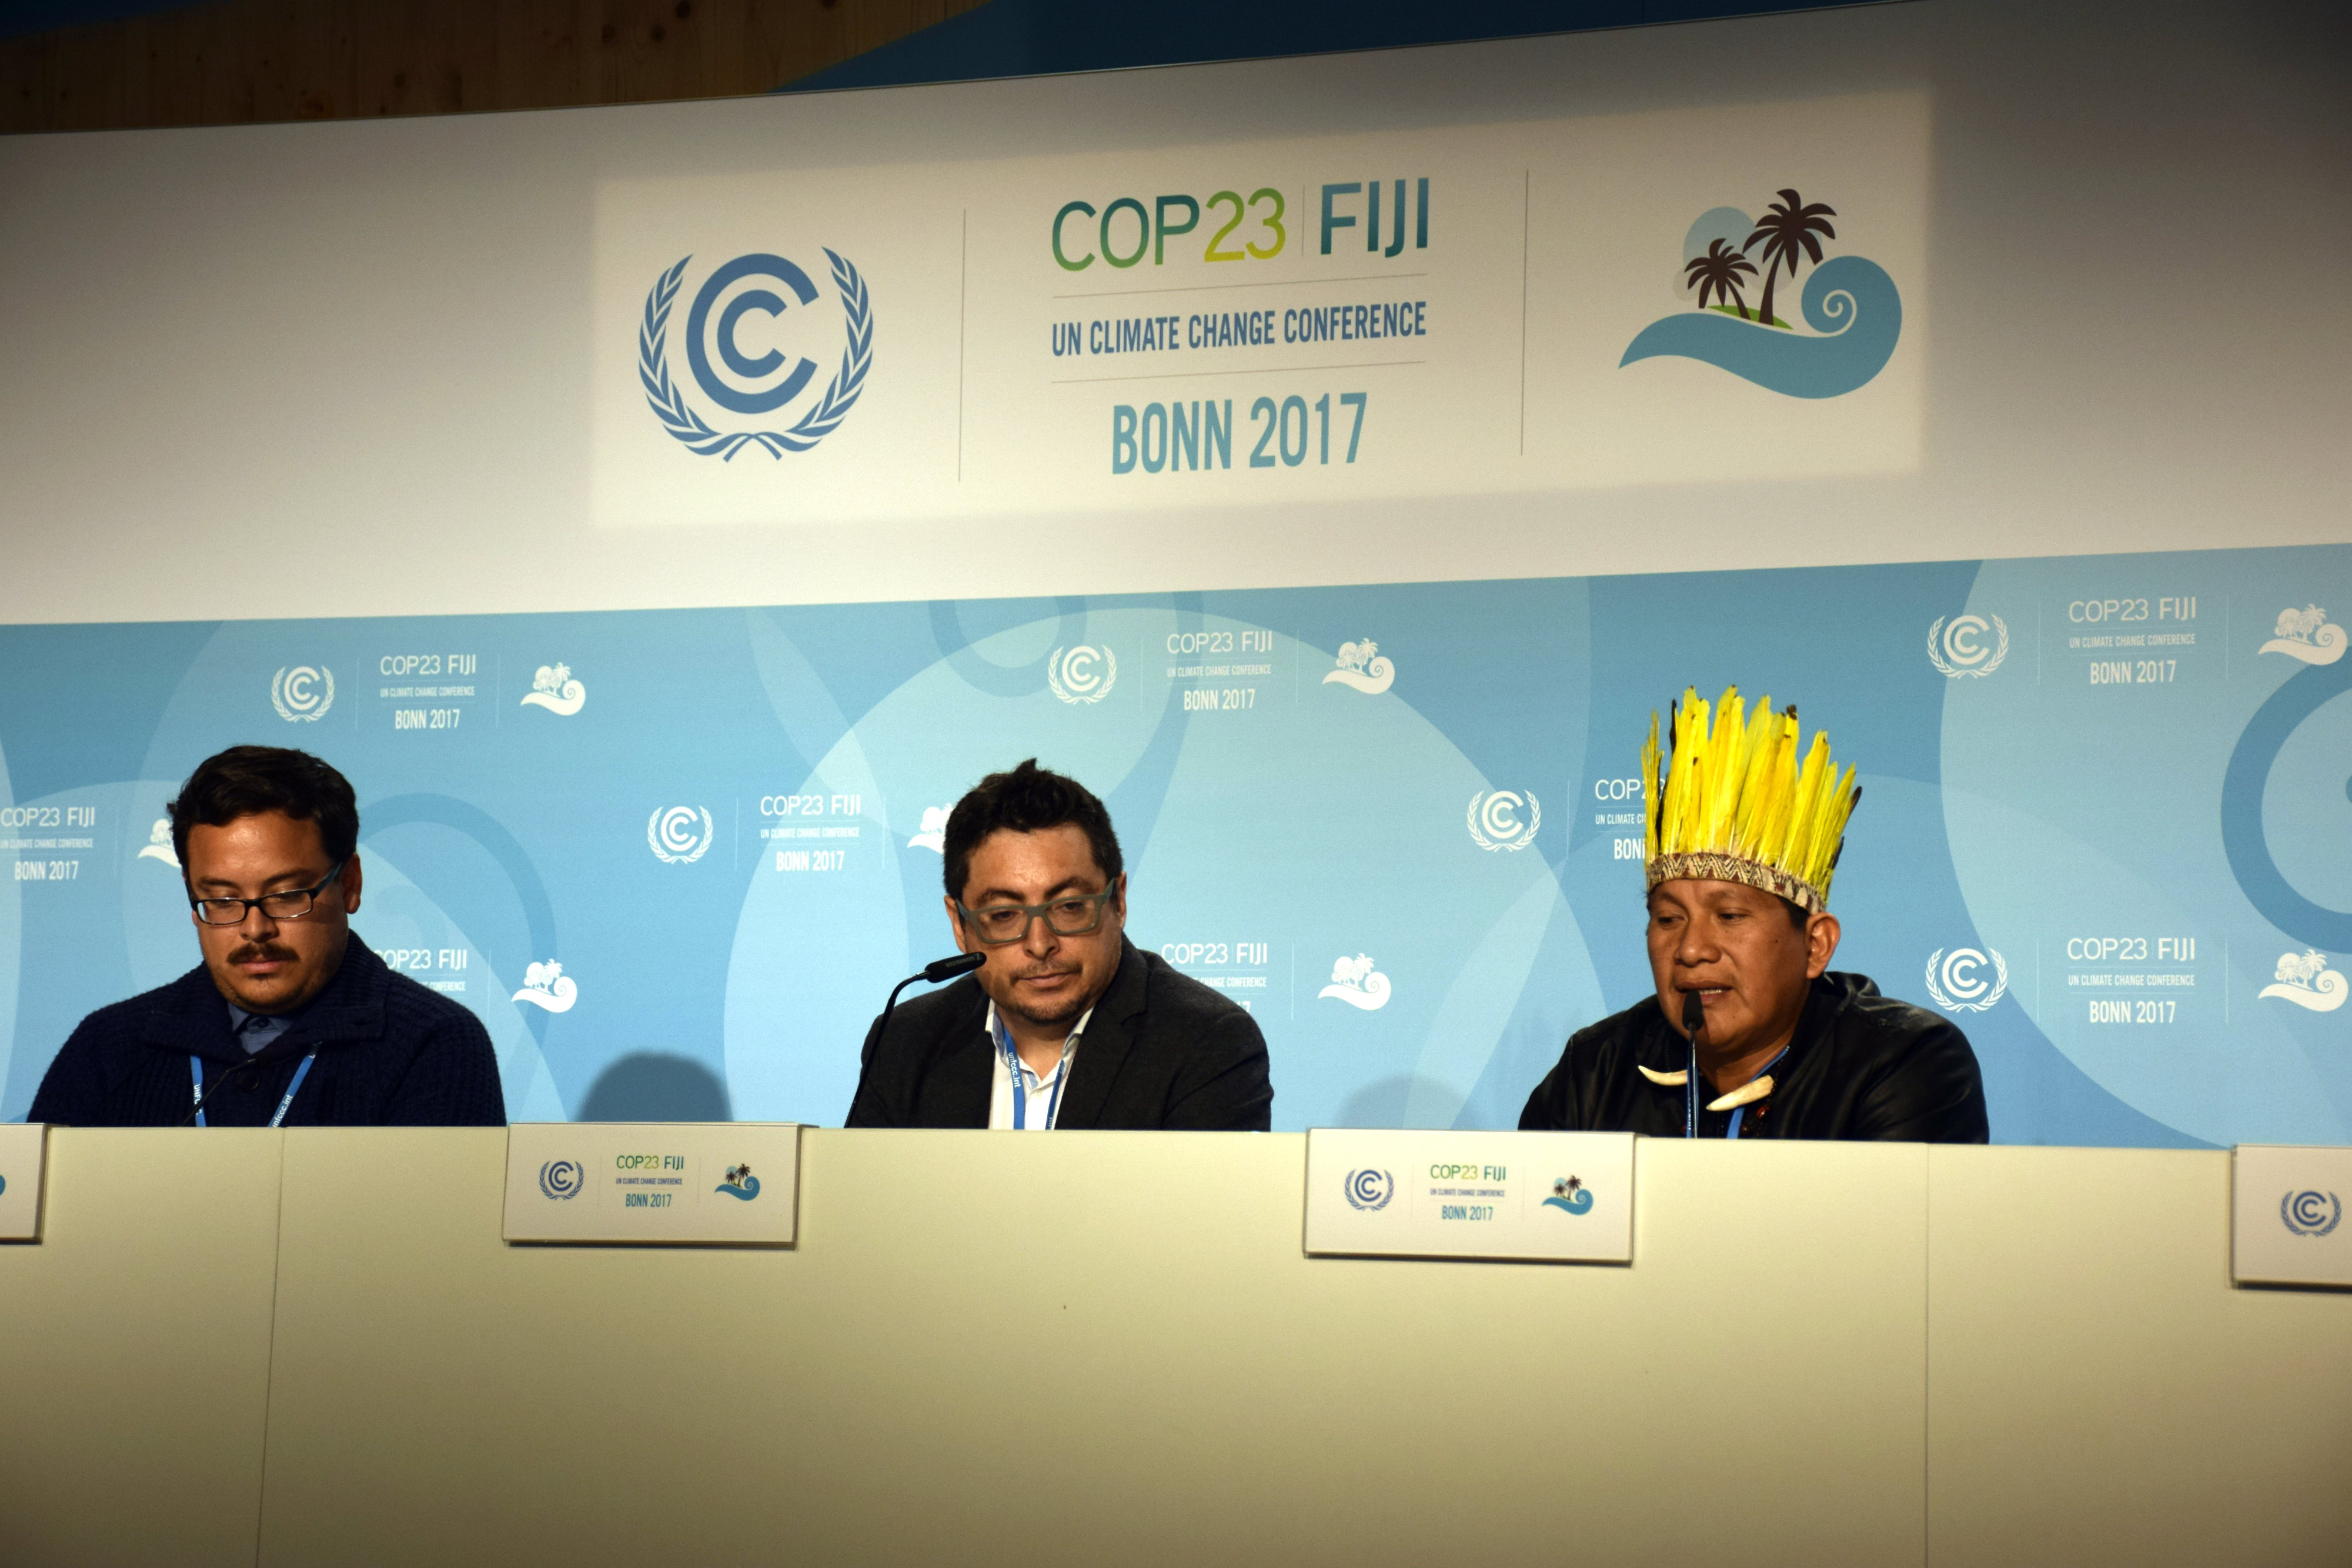 Photo: Leaders from Indigenous communities speak at a press conference in COP 23. Credit: Stella Paul | IDN-INPS